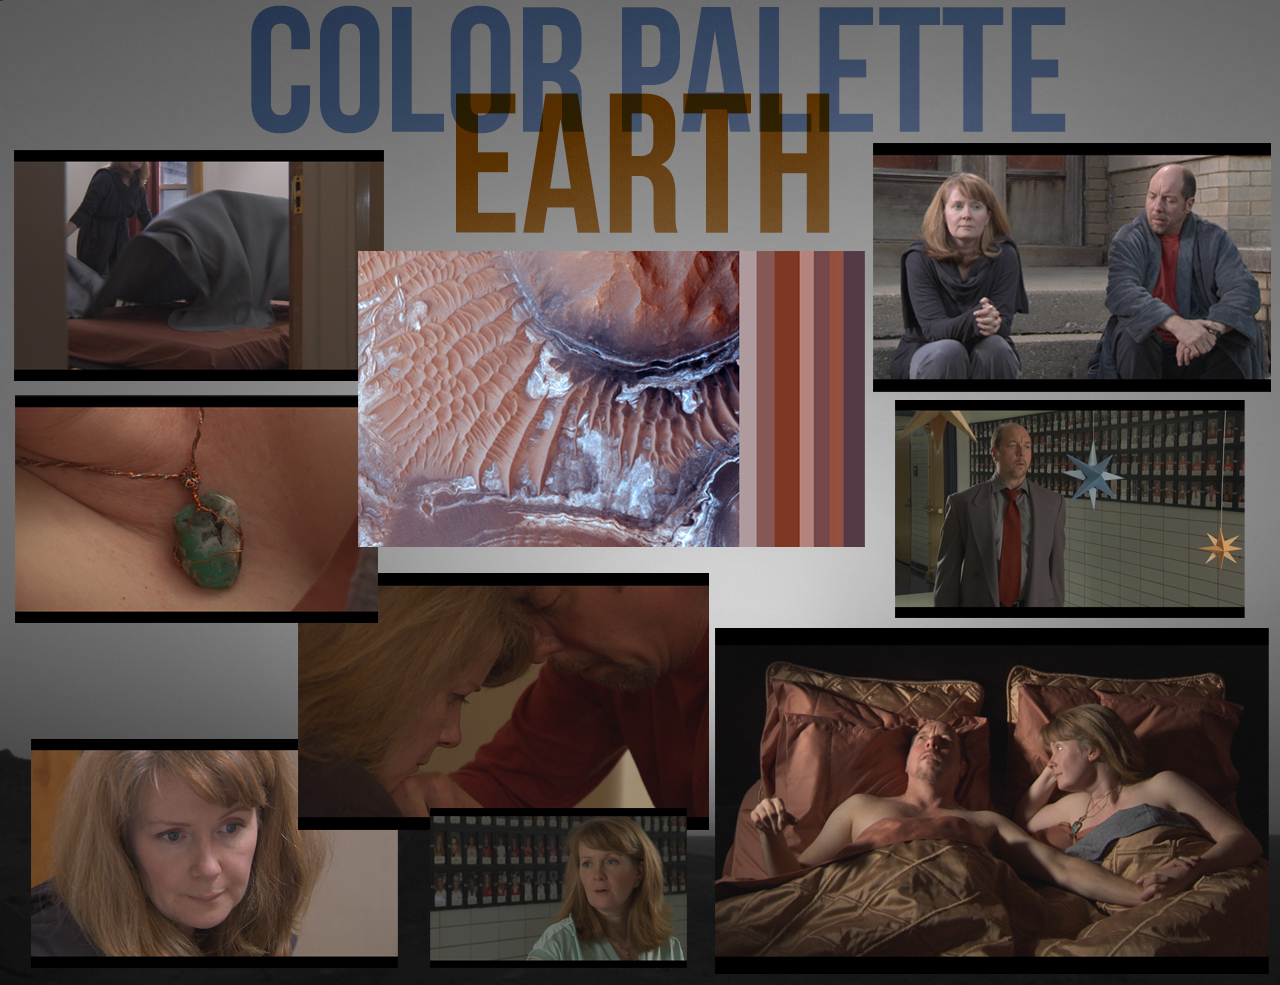 *colorpalette earth.jpg